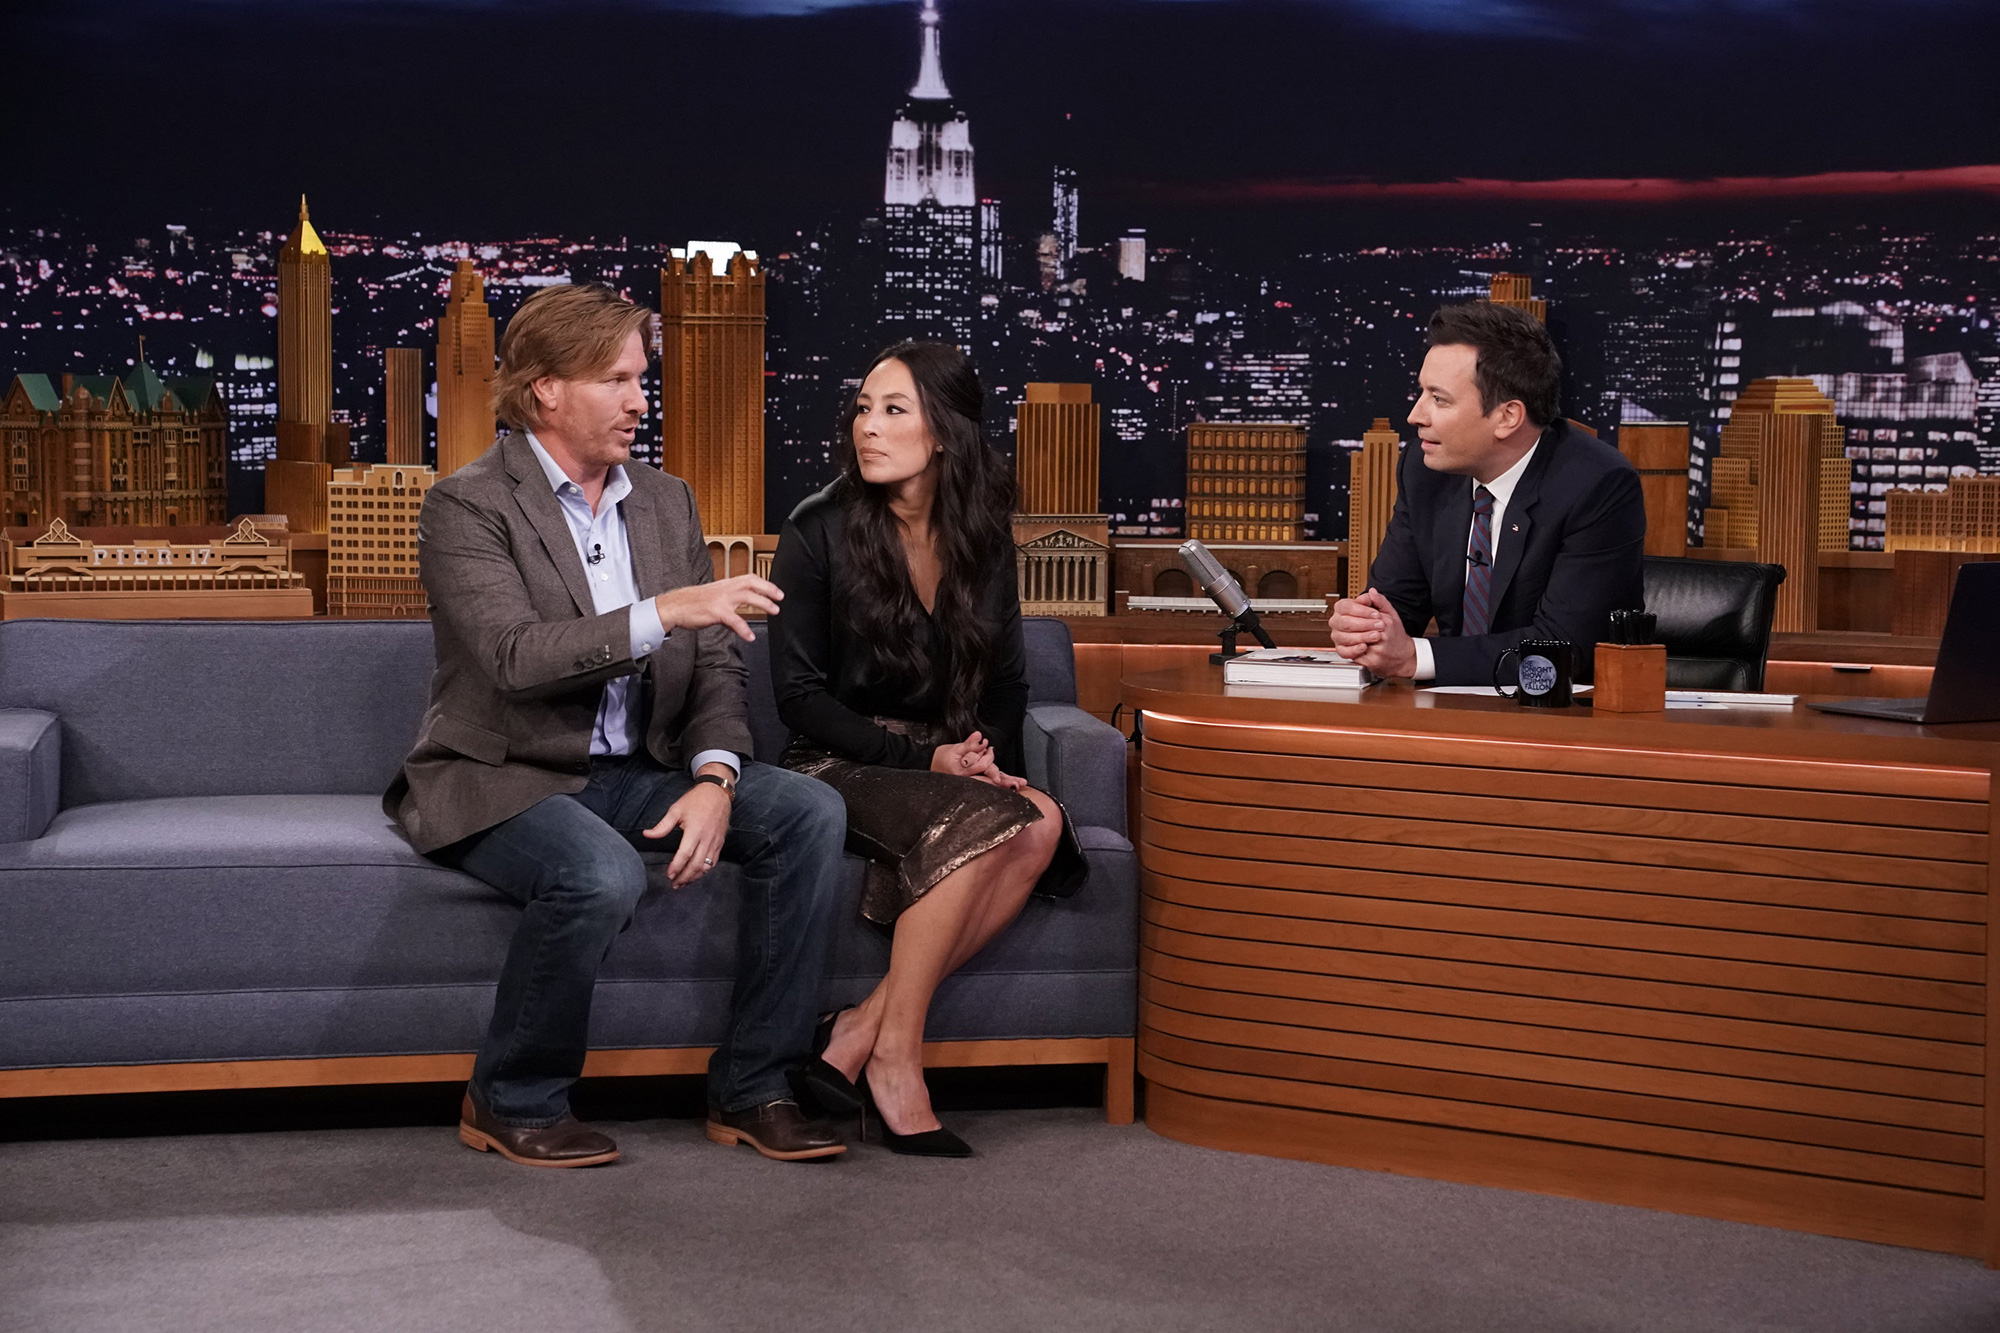 Chip and Joanna Gaines Are Returning to TV with Their Own Network: 'We Are Excited to Be Back!' chip-joanna-tonight-show-jimmy-fallon